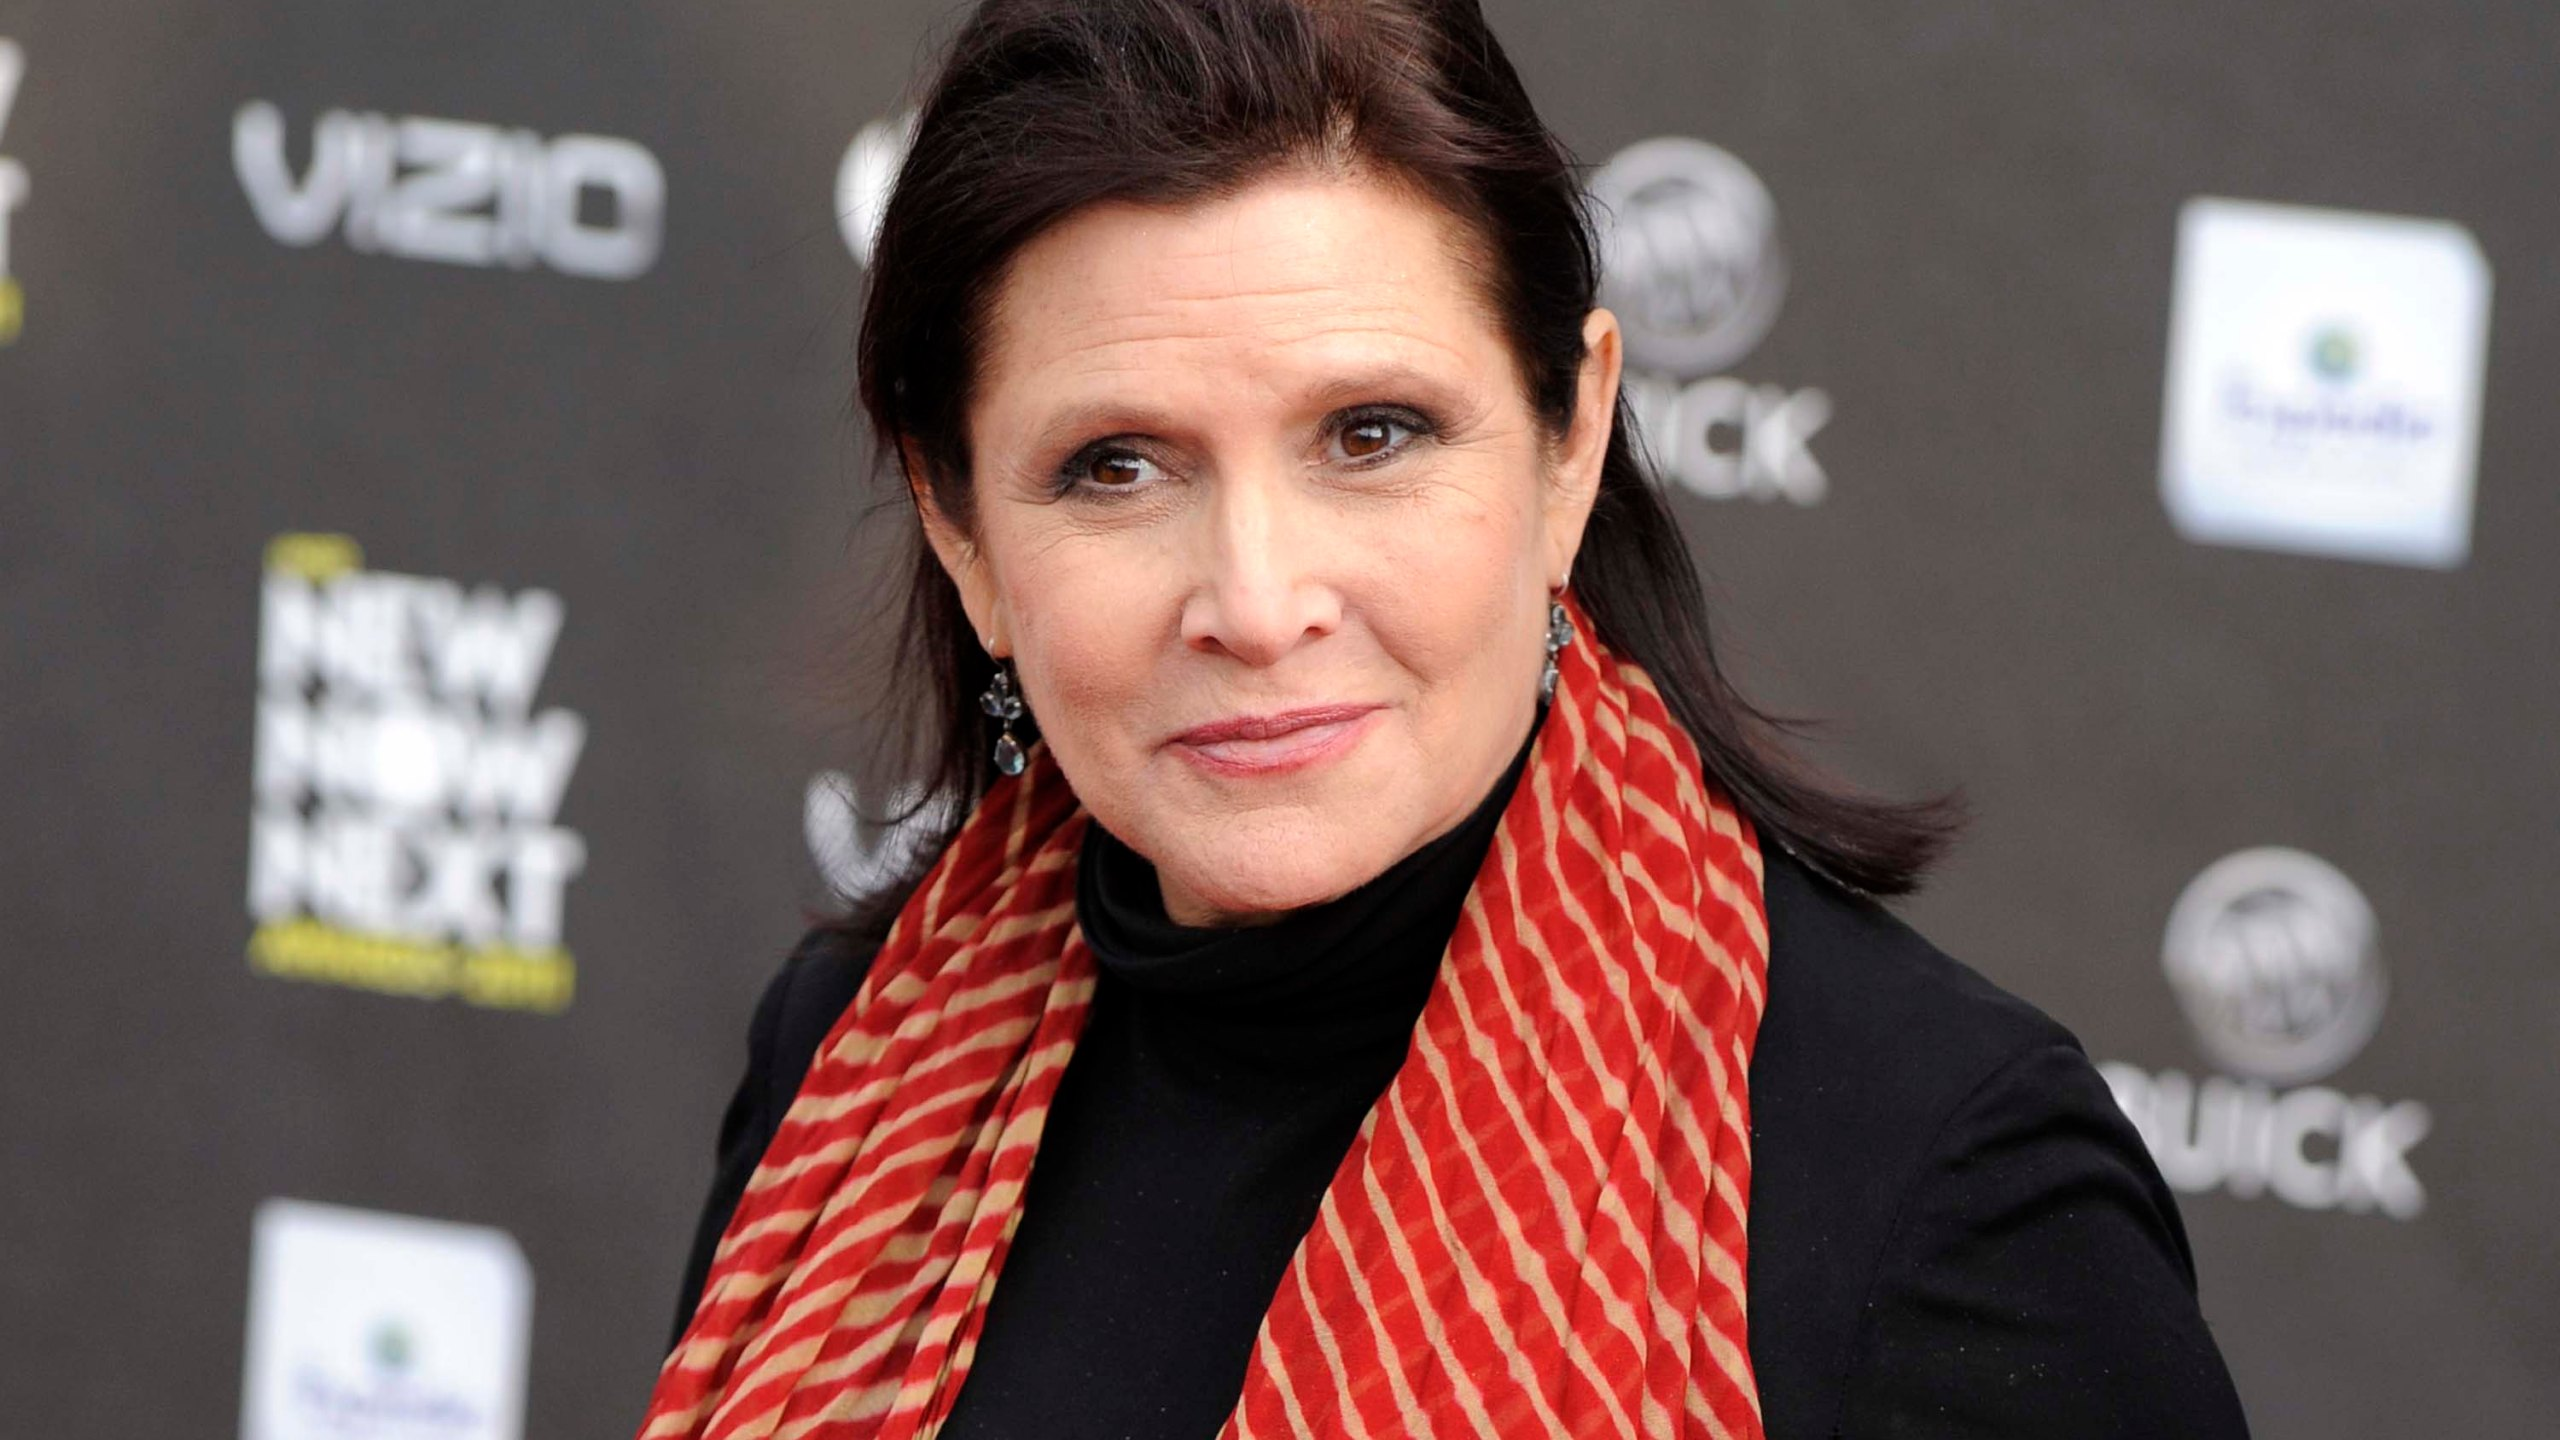 Carrie Fisher Photo by Chris Pizzello, AP Photo_259357